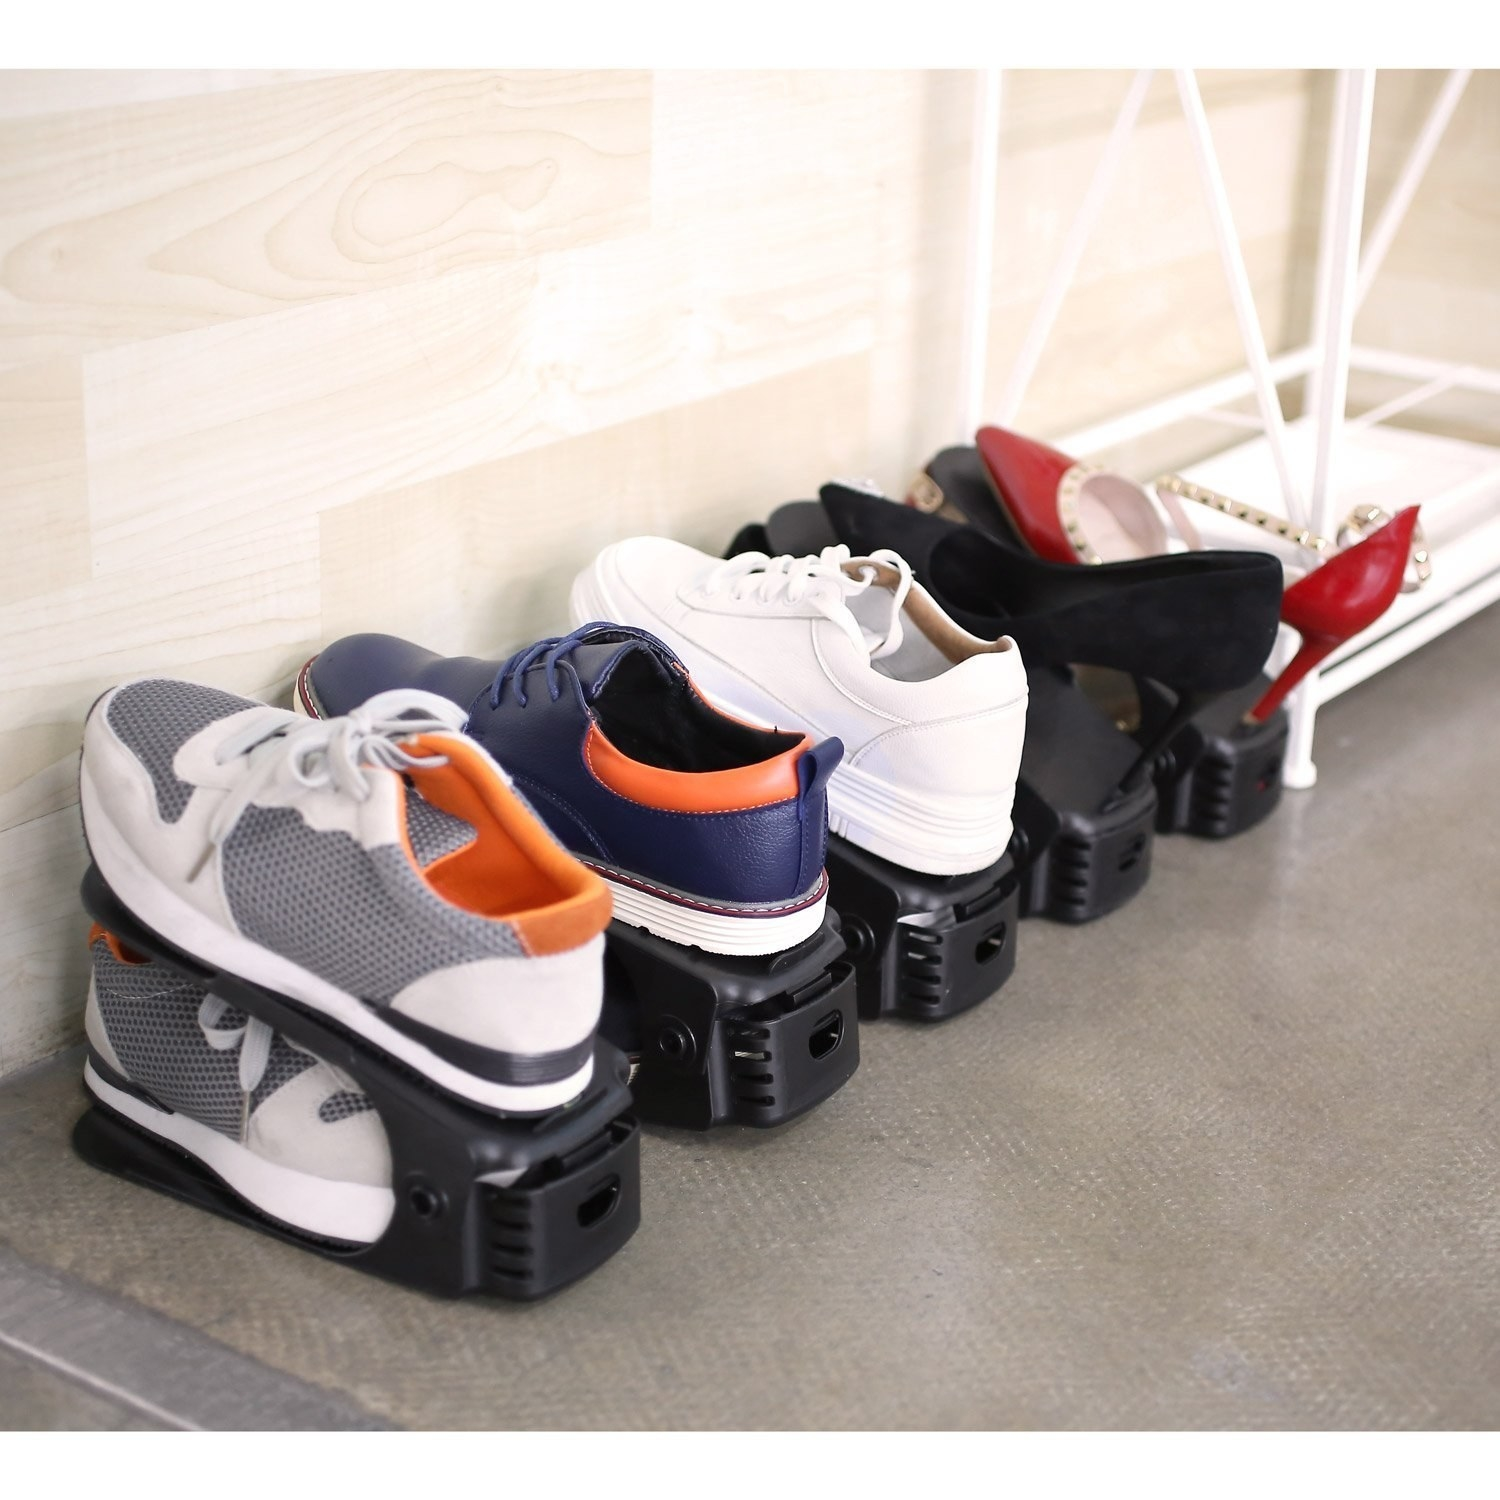 A set of shoe organisers with shoes on them